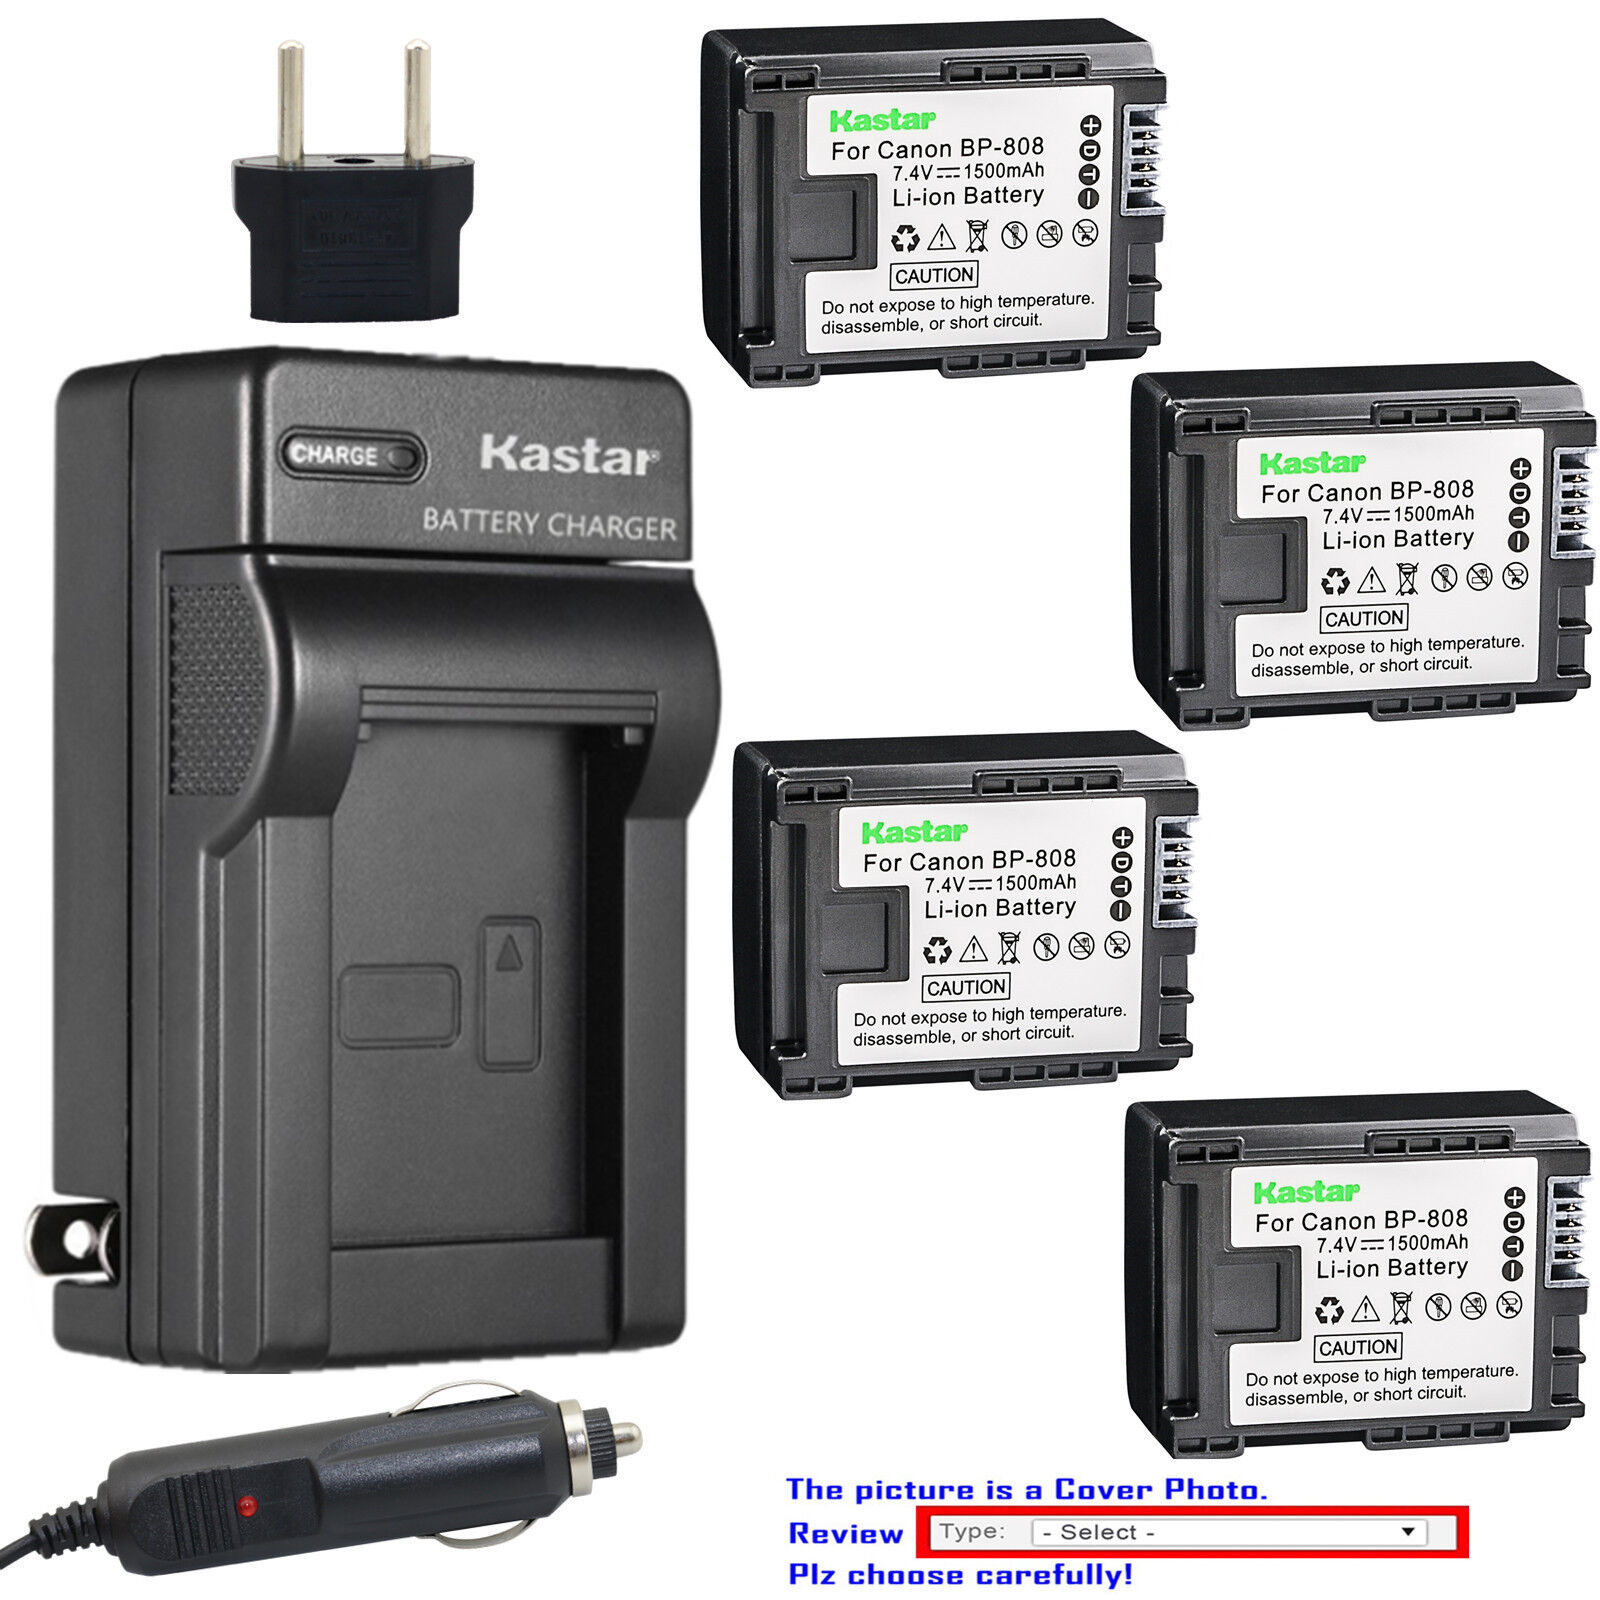 Kastar Battery AC Charger for Canon BP-808 CG-800 & Canon FS